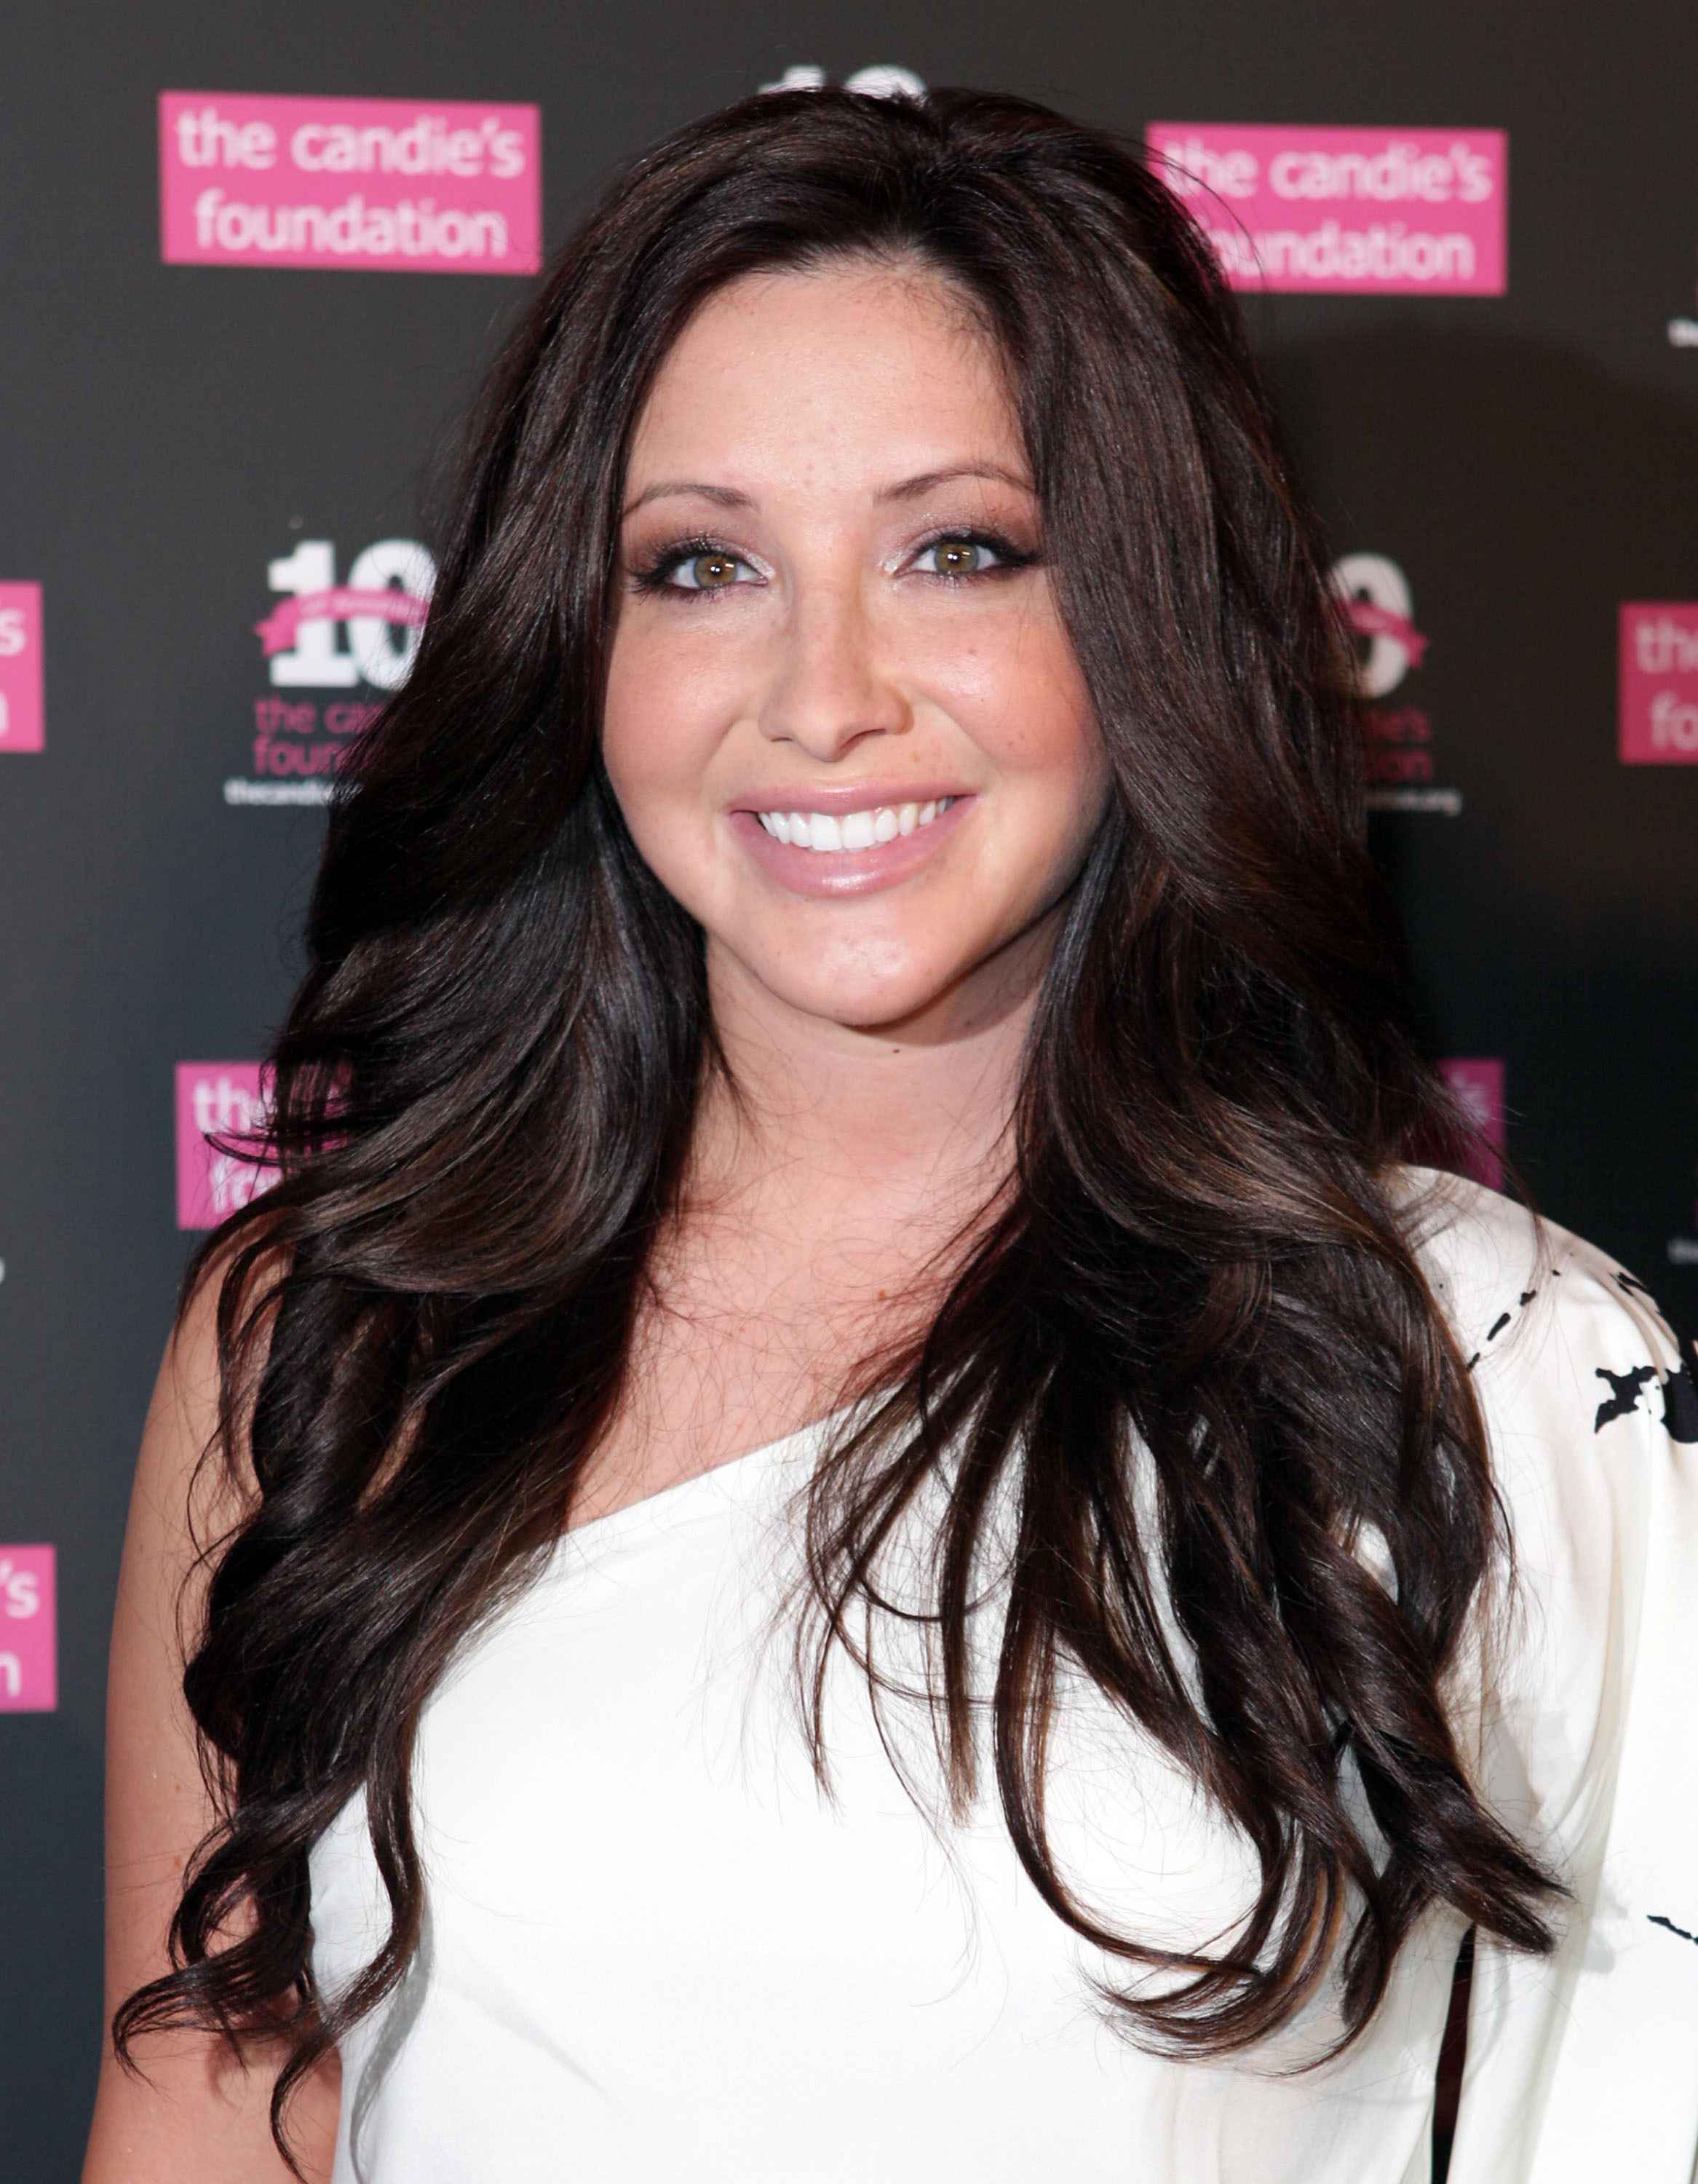 Photos: Bristol Palin's got a brand new face?